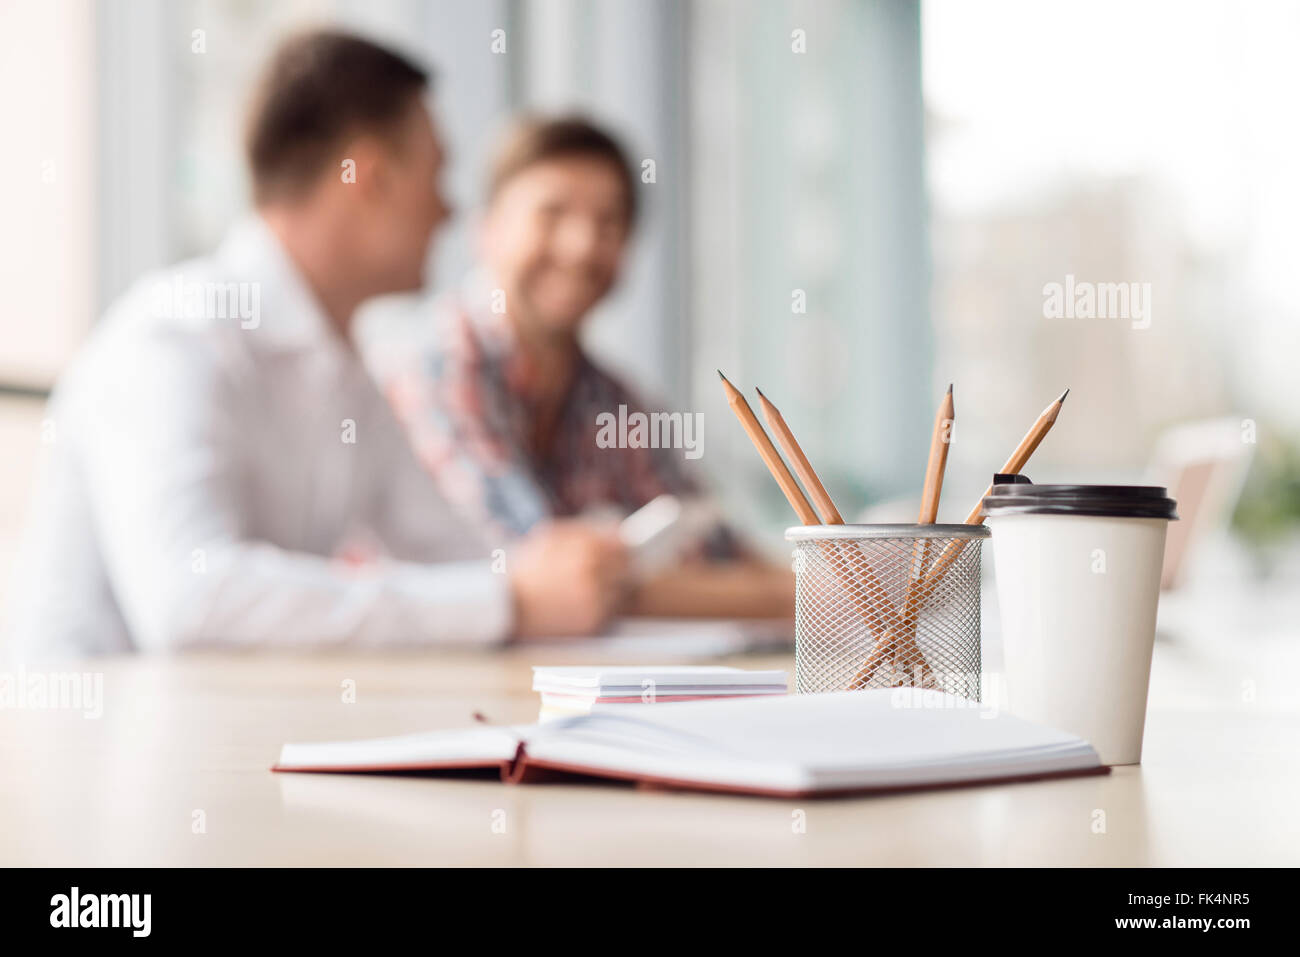 Stationary lying on the table - Stock Image